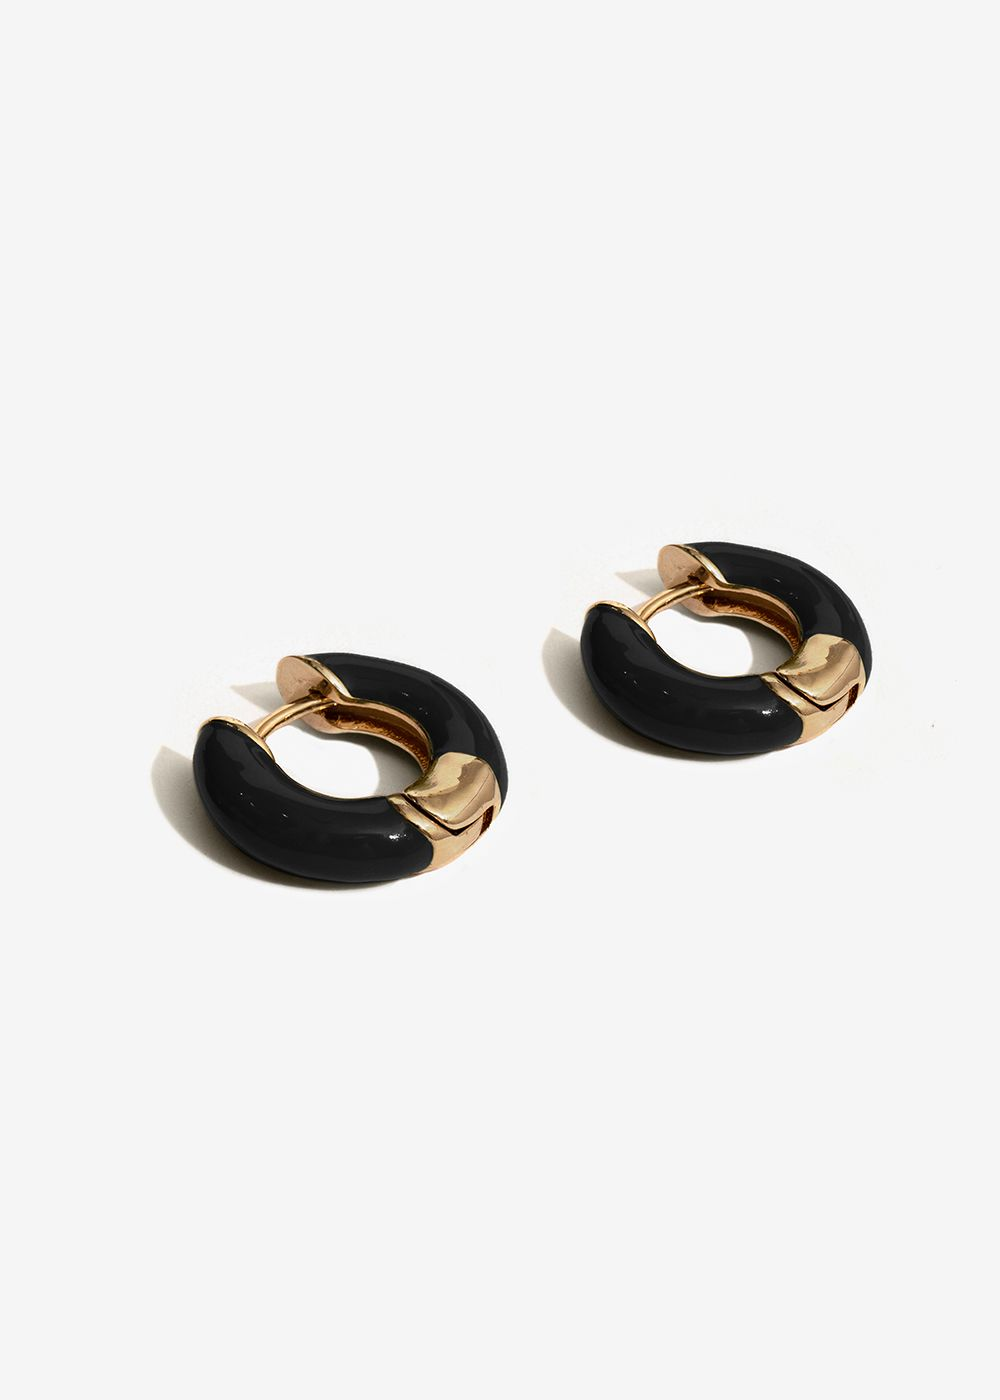 SMALL BLACK ENAMELED HOOP EARRINGS